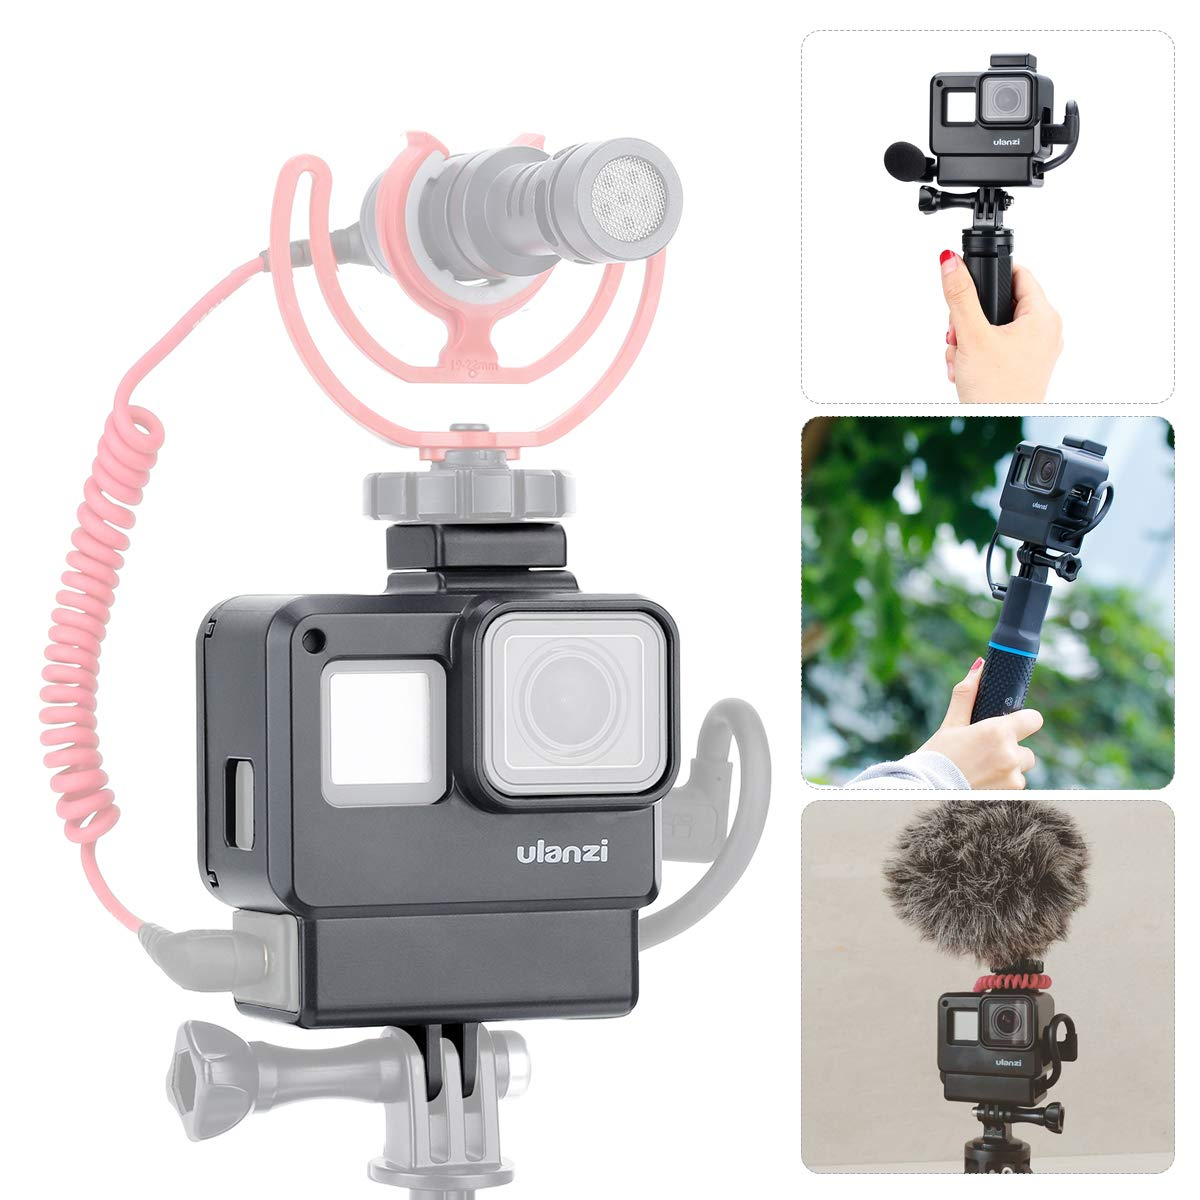 ULANZI V2 Multifunctional Vlogging Case w Cold Shoe Mount for Microphone LED Video Light,Wire Connectable Frame Housing Shell Cage Compatible w Gopro Hero 7 6 5 Action Camera Video Vlog Creator Setup